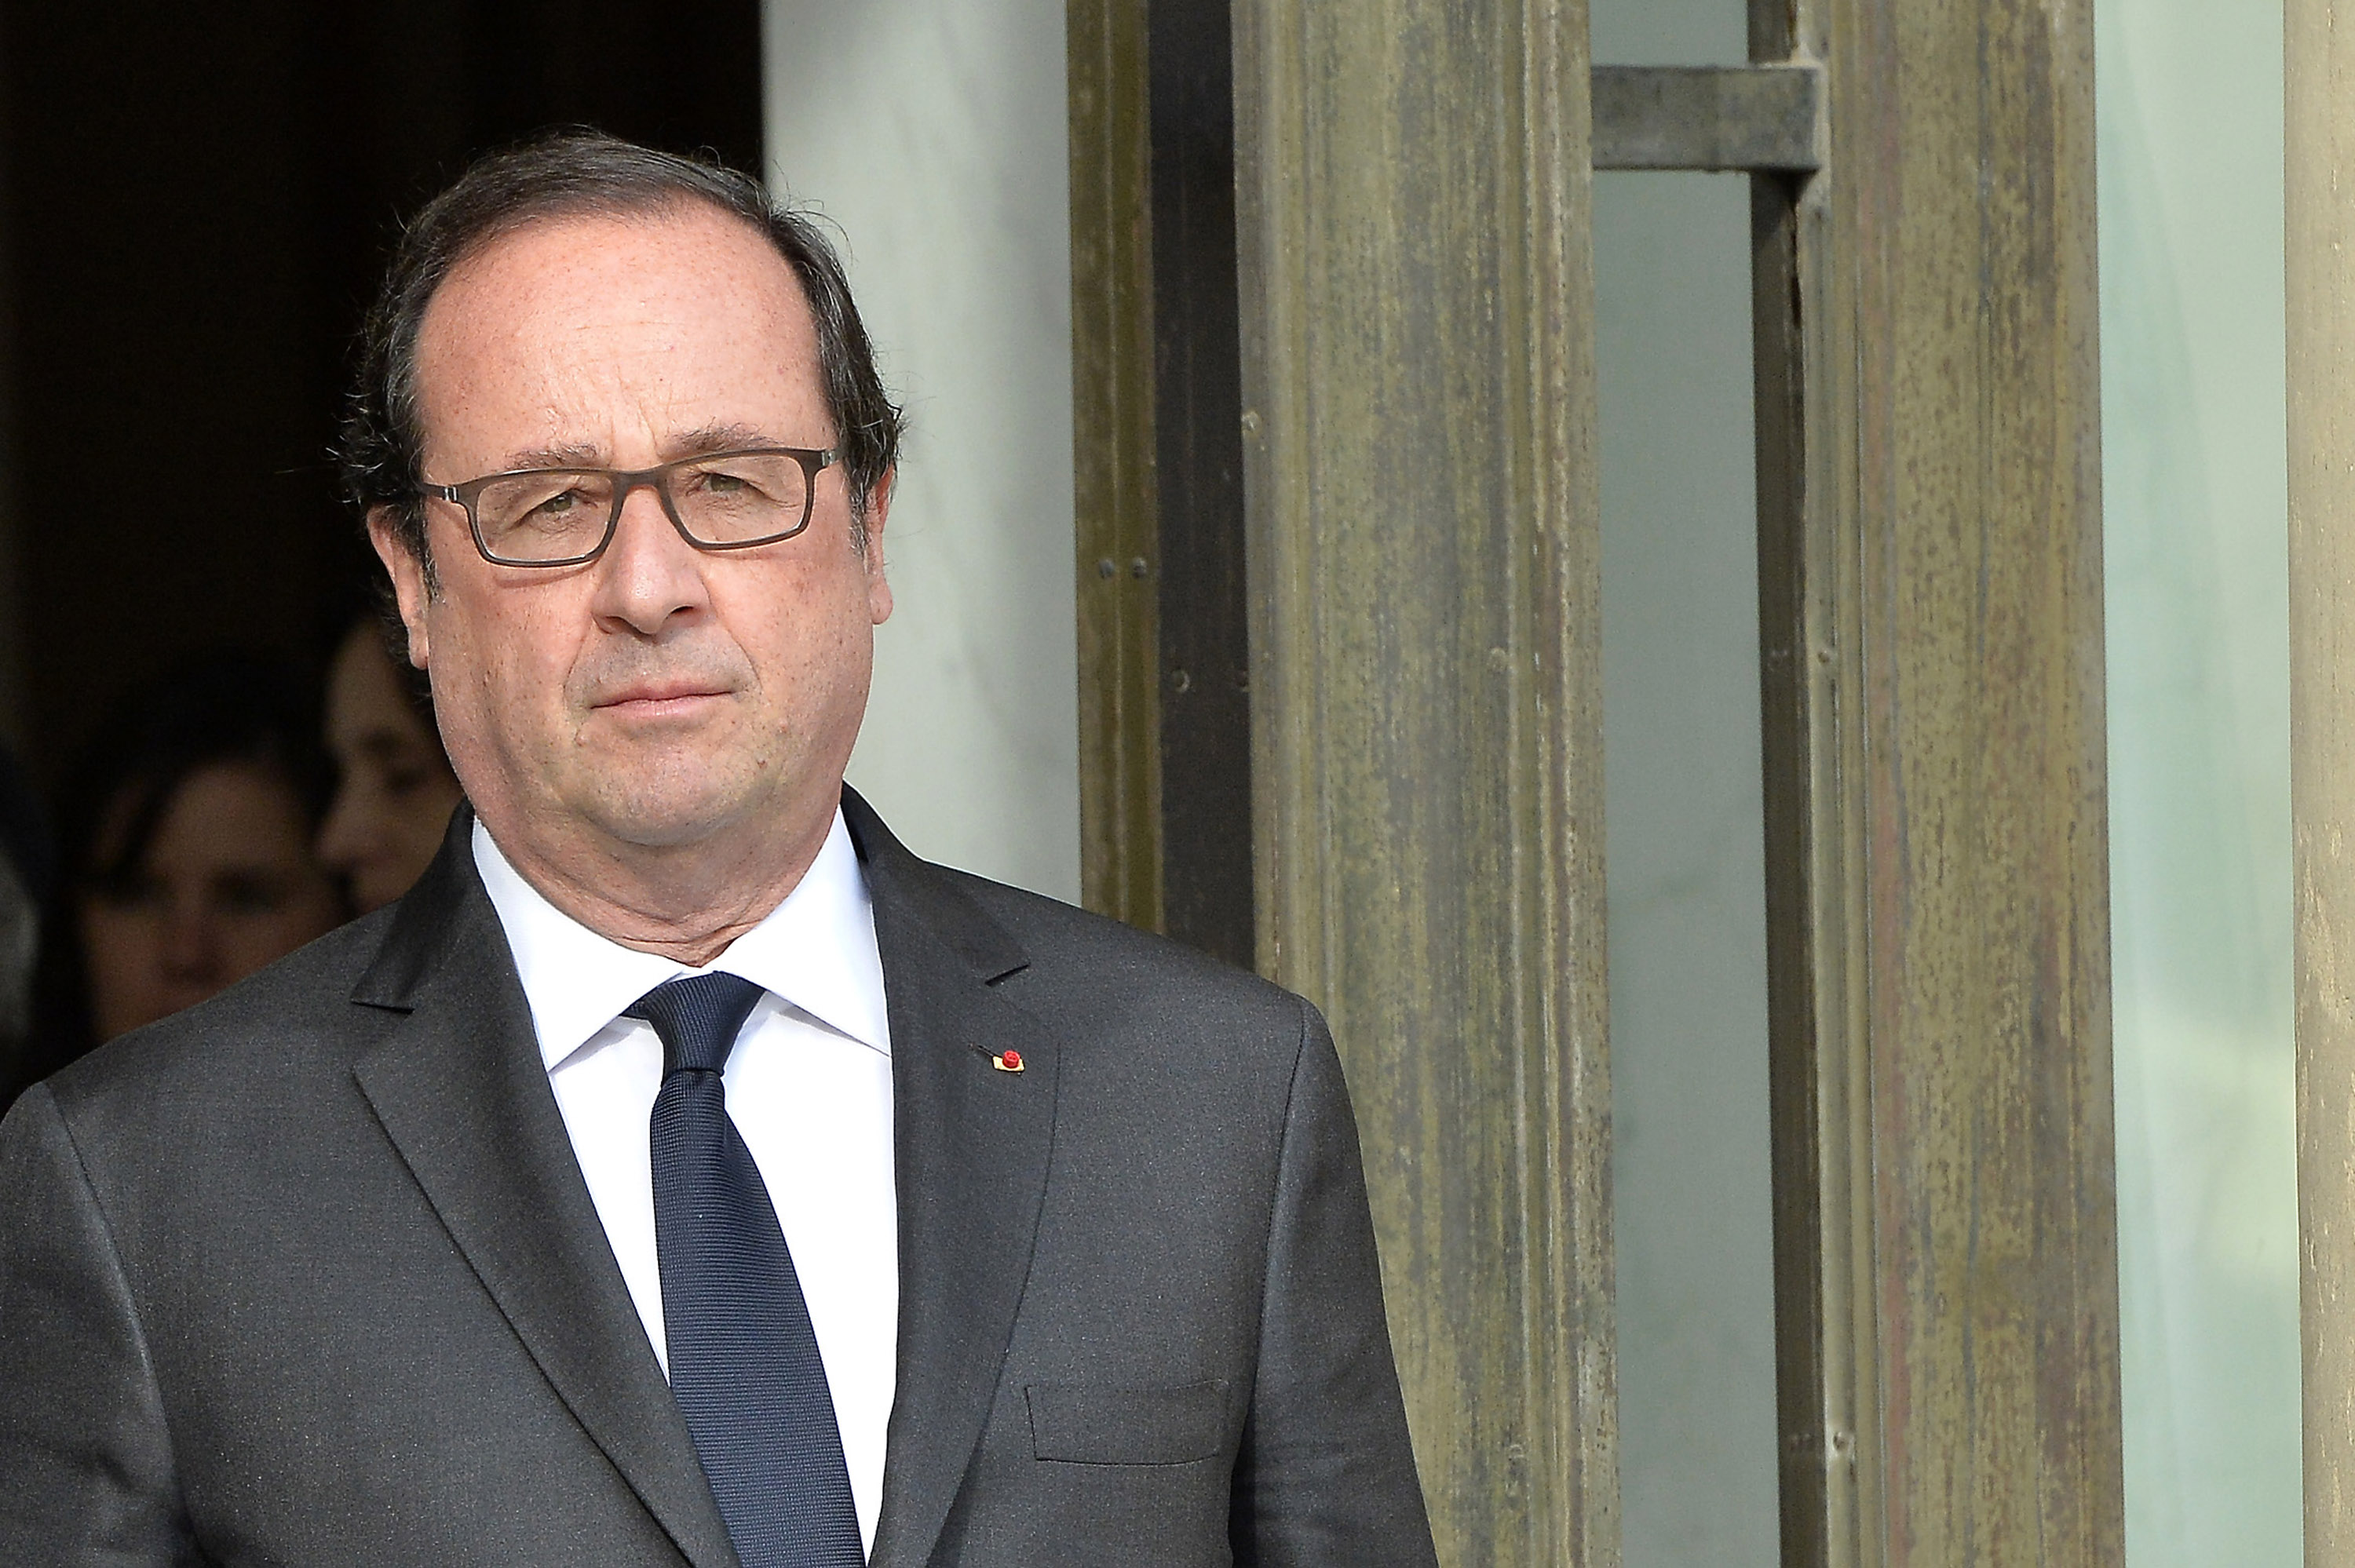 French President, Francois Hollande is seen after the meeting with the representatives of religions at Elysee Palace on July 27, 2016 in Paris, France.